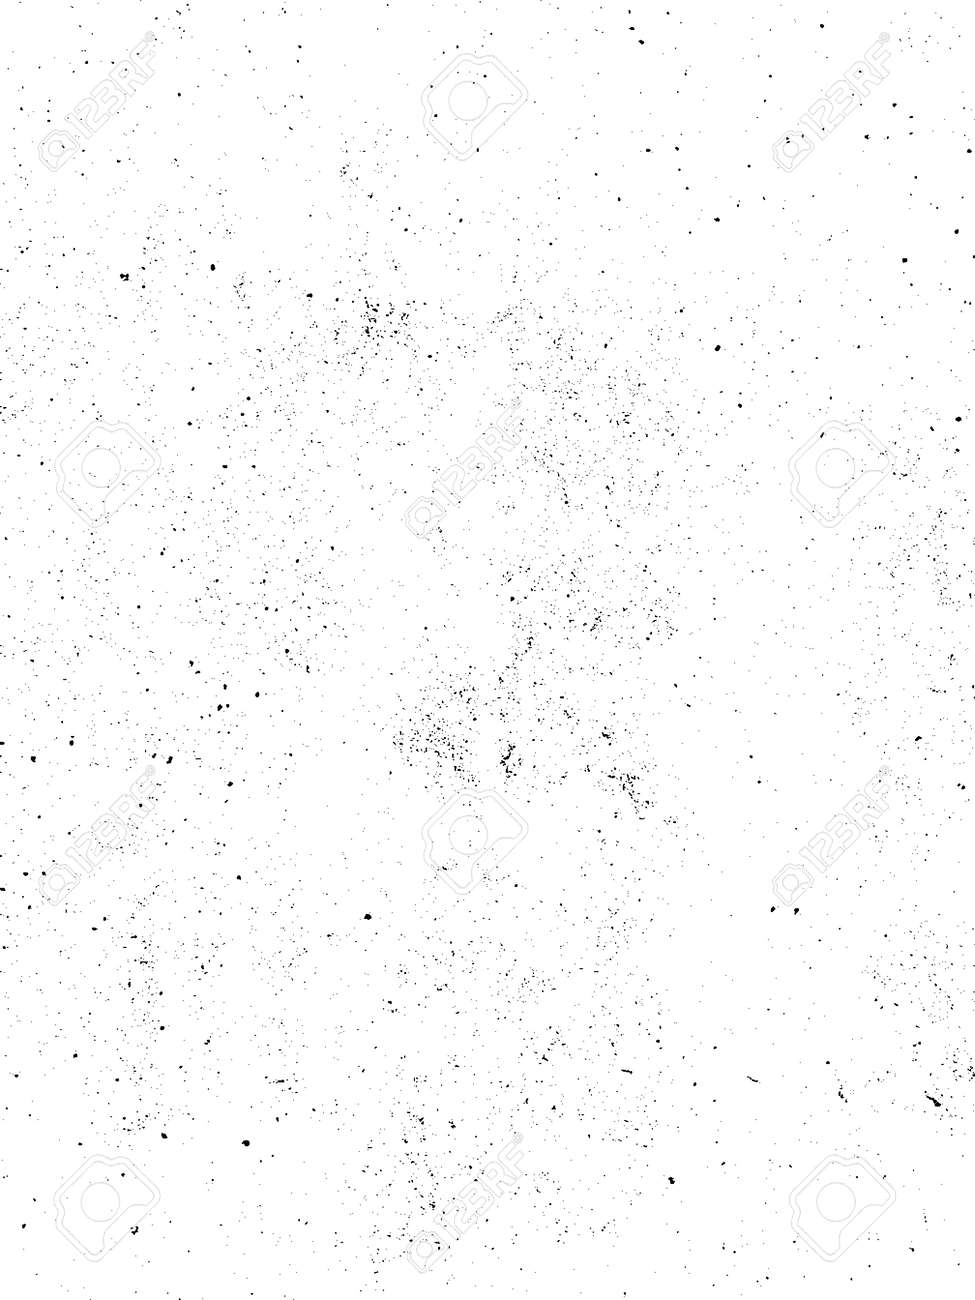 Cement texture. Concrete overlay black and white texture. - 169291840